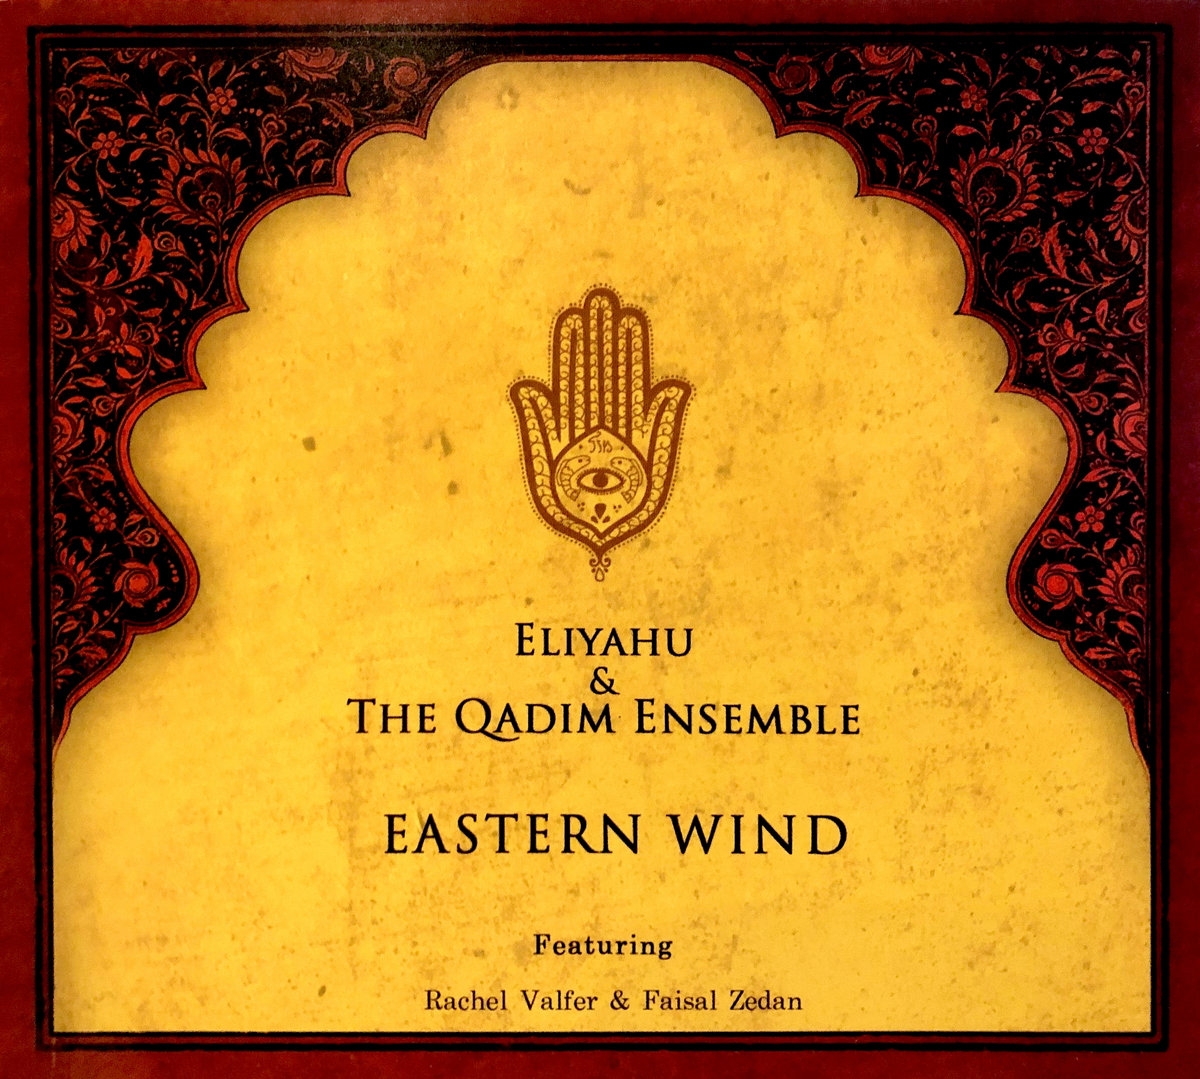 Eliyahu & The Qadim Ensemble : Eastern Wind -  album art